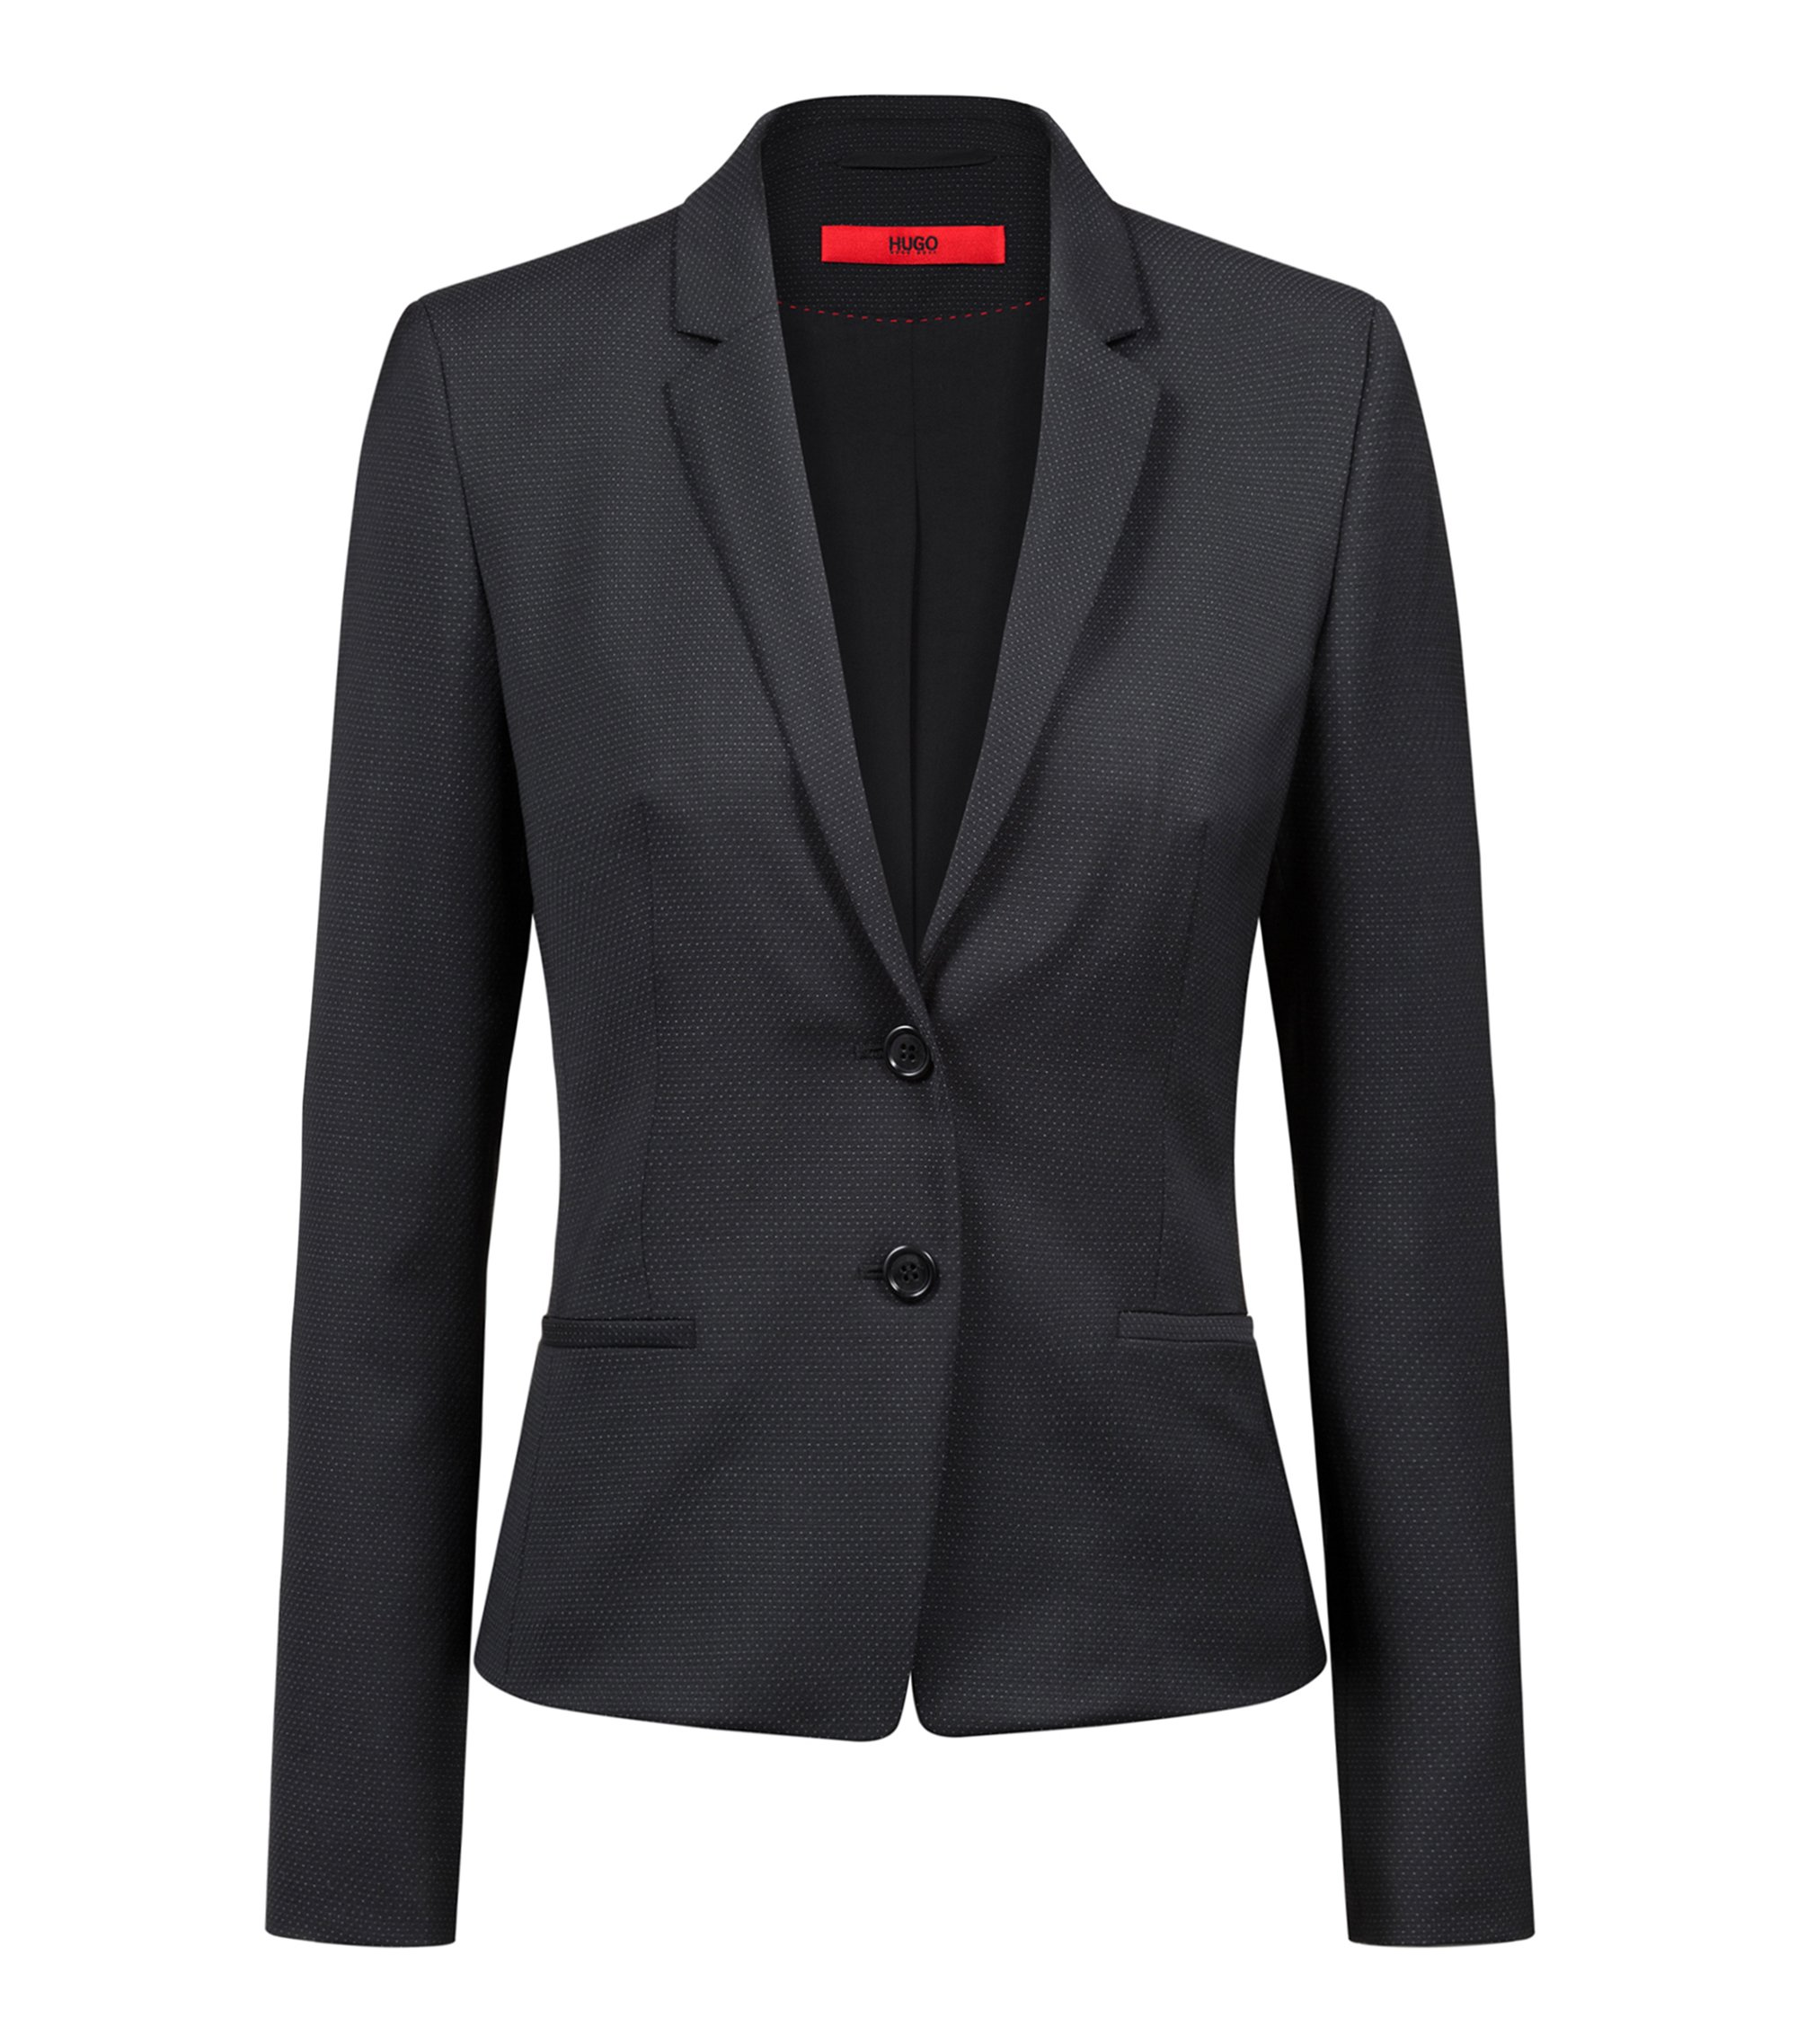 Regular-fit jacket in a micro-pattern wool blend, Black